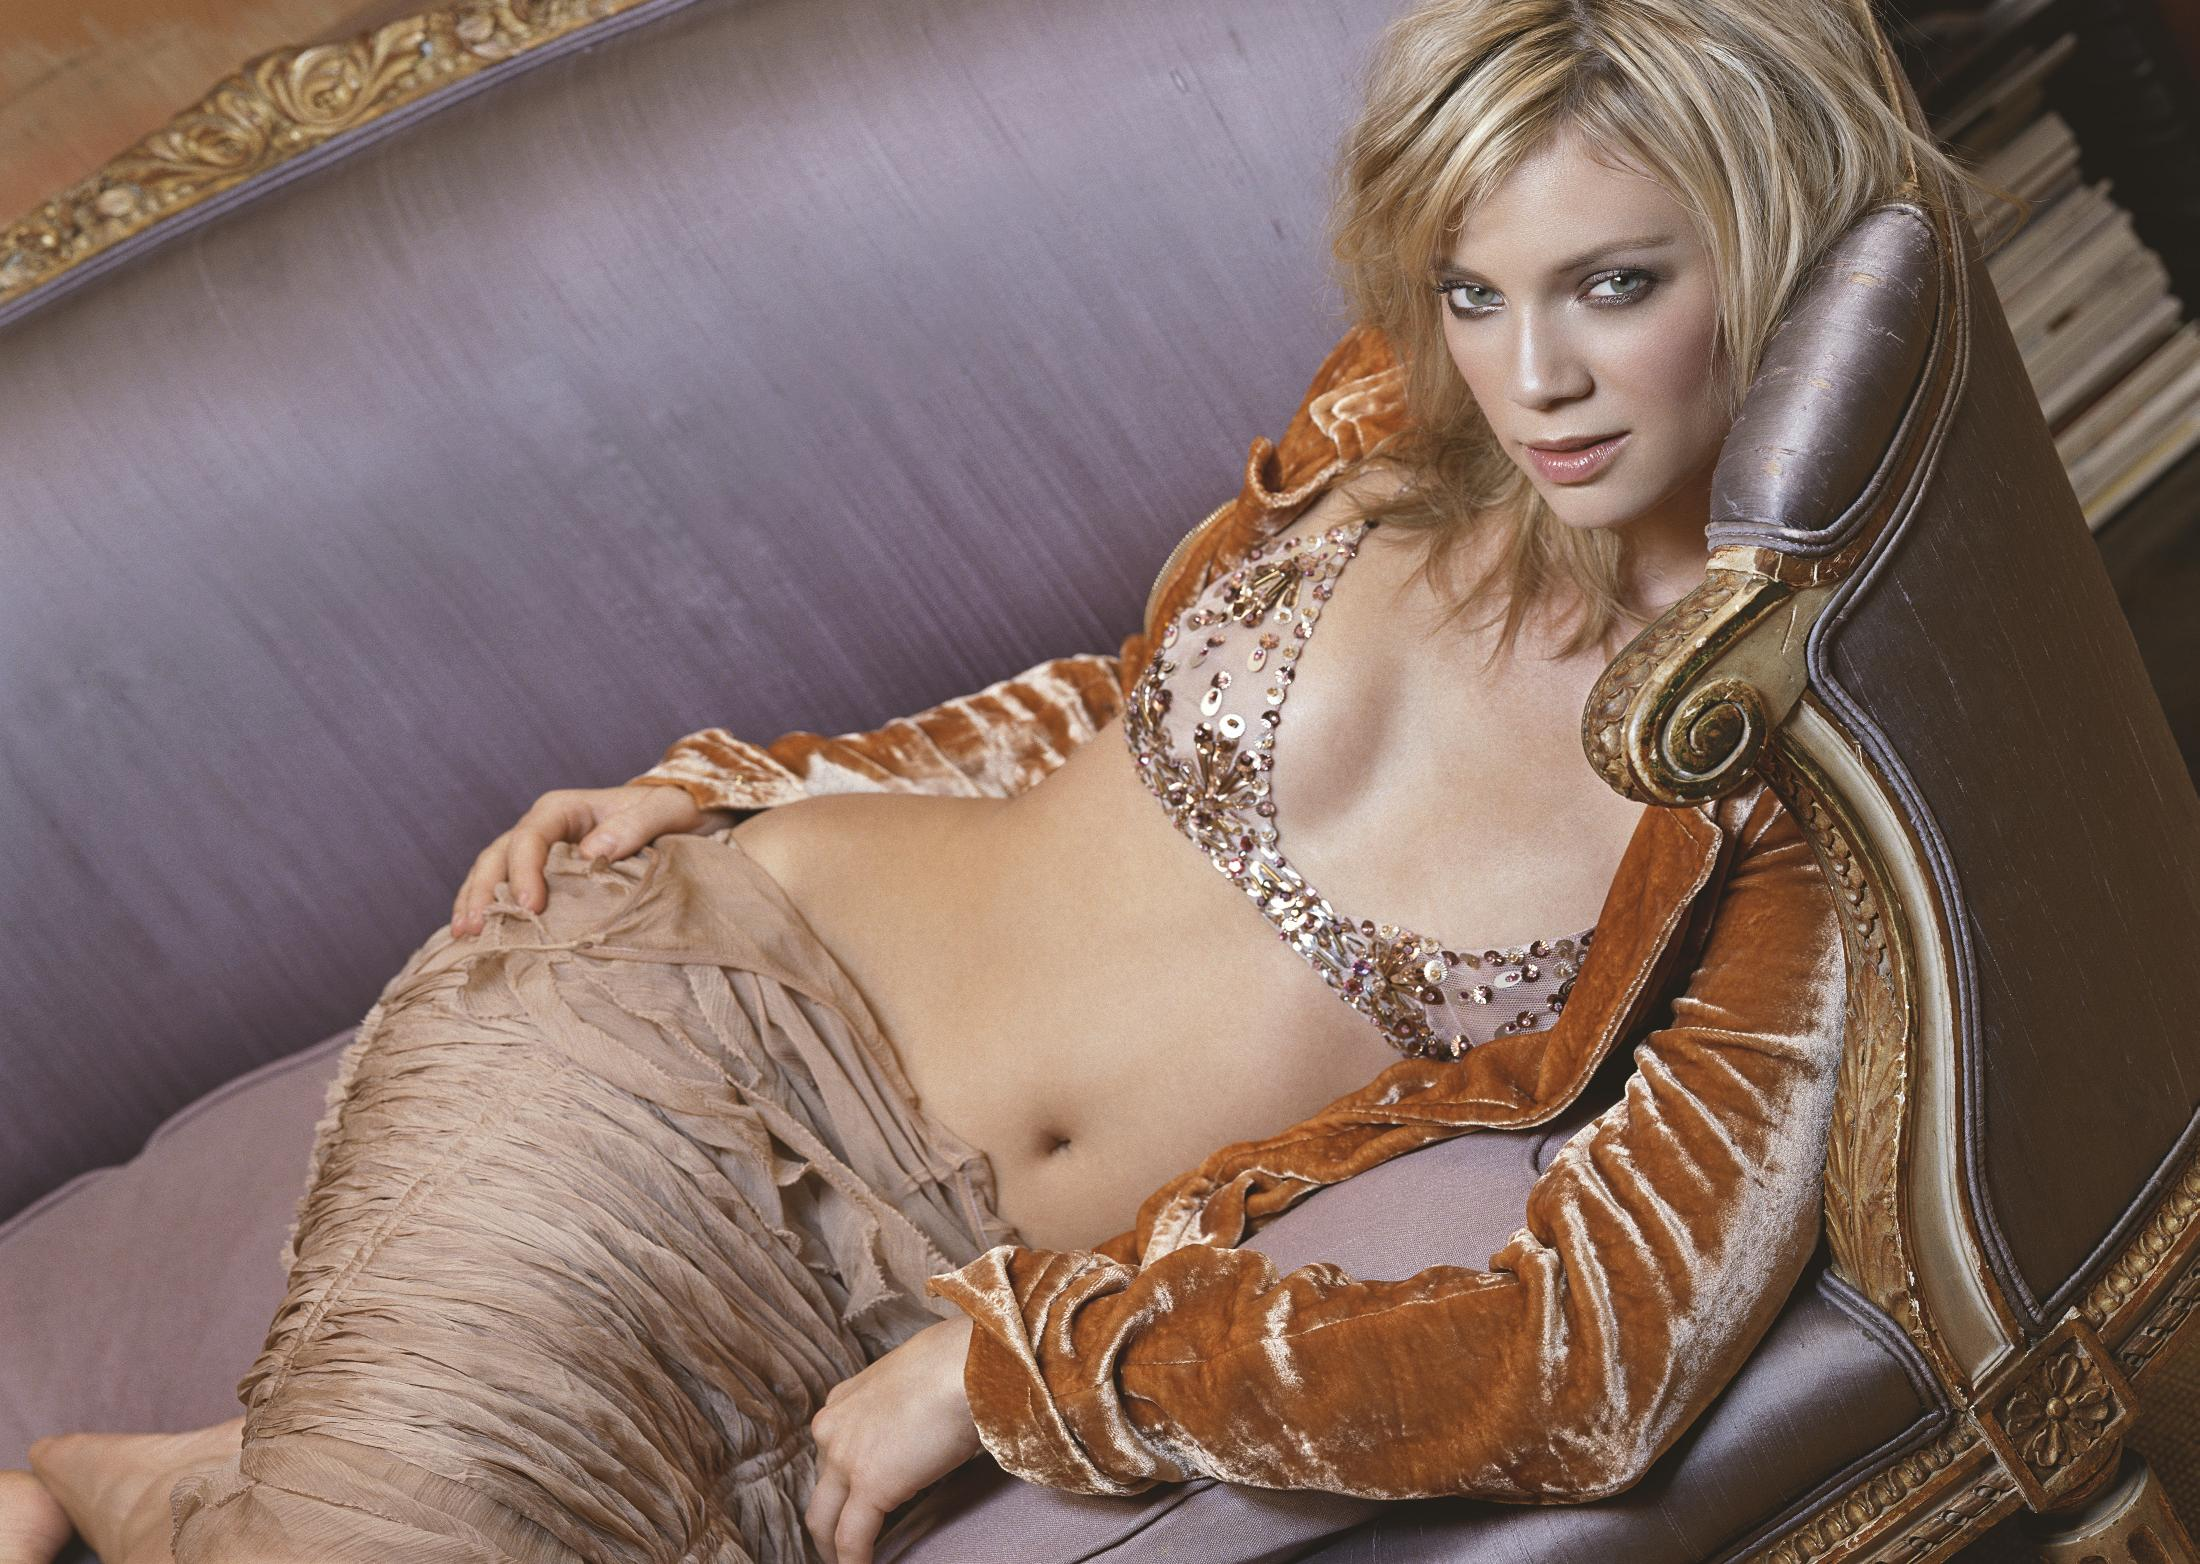 40 Fancy AF Birthday Party Outfit Ideas StyleCaster Amy smart hot photo